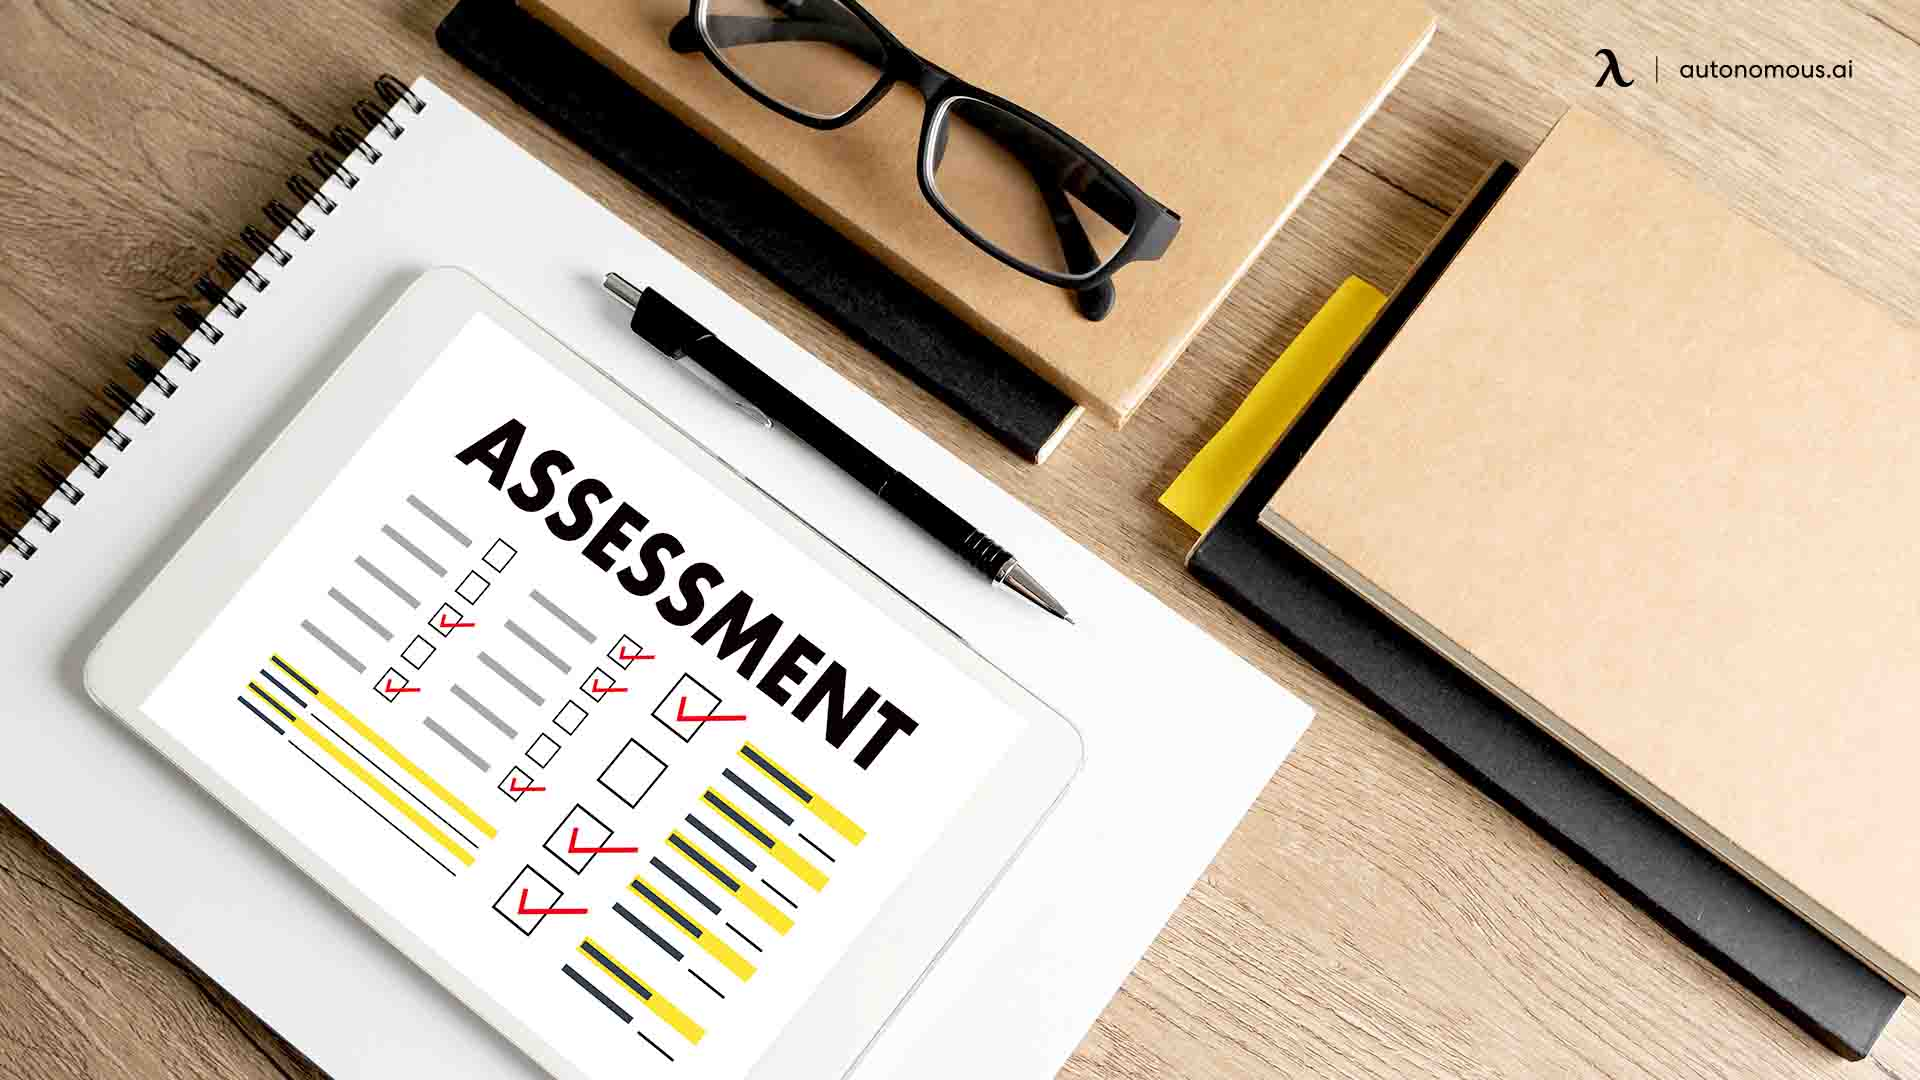 Performance management has been revised